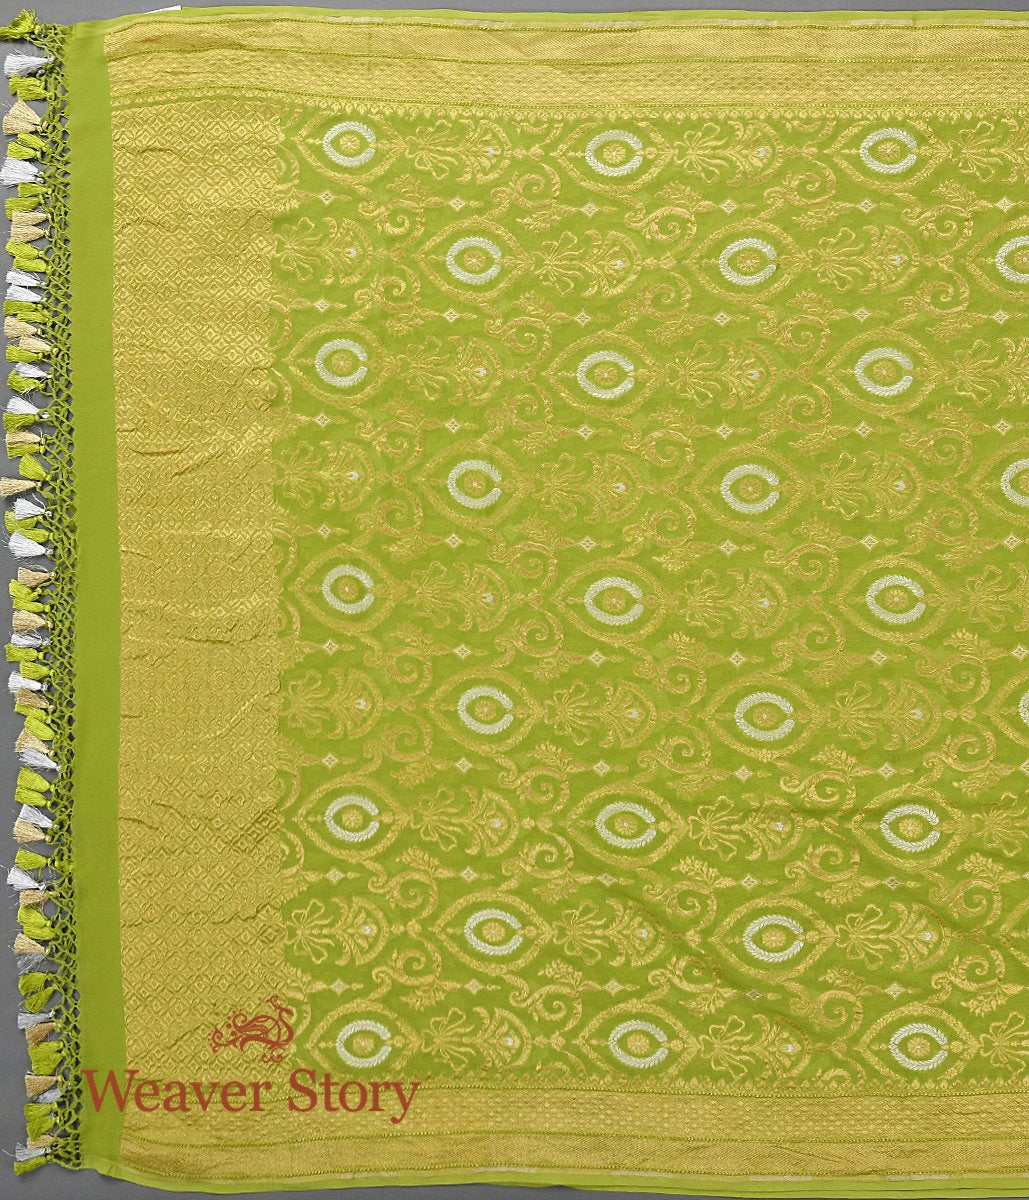 Handwoven Green Banarasi Grorgette Dupatta with Gold and Silver Zari Jaal